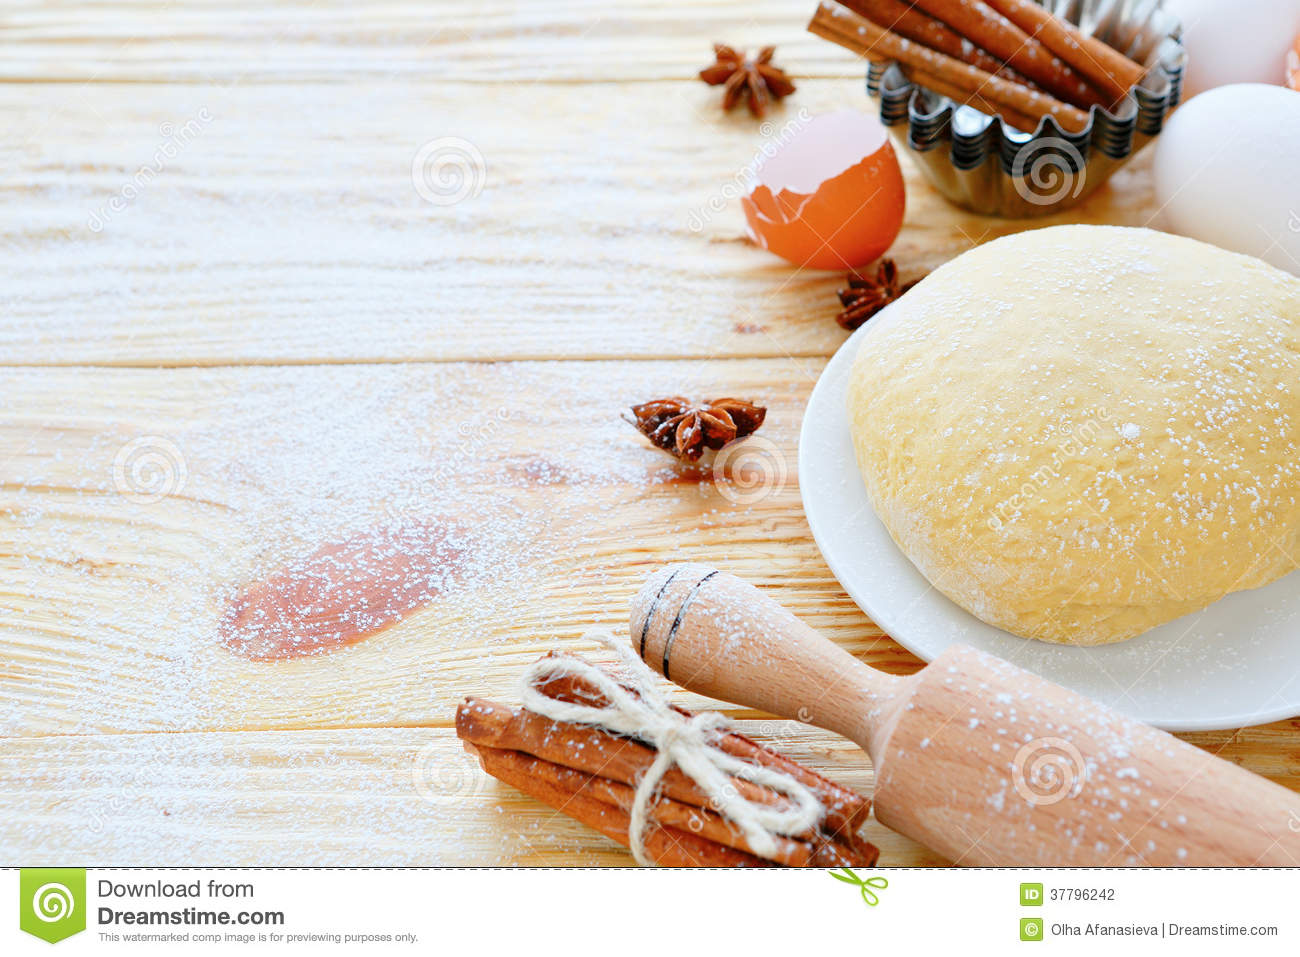 Ingredients For Baking And Pastry Stock Photo - Image of ...